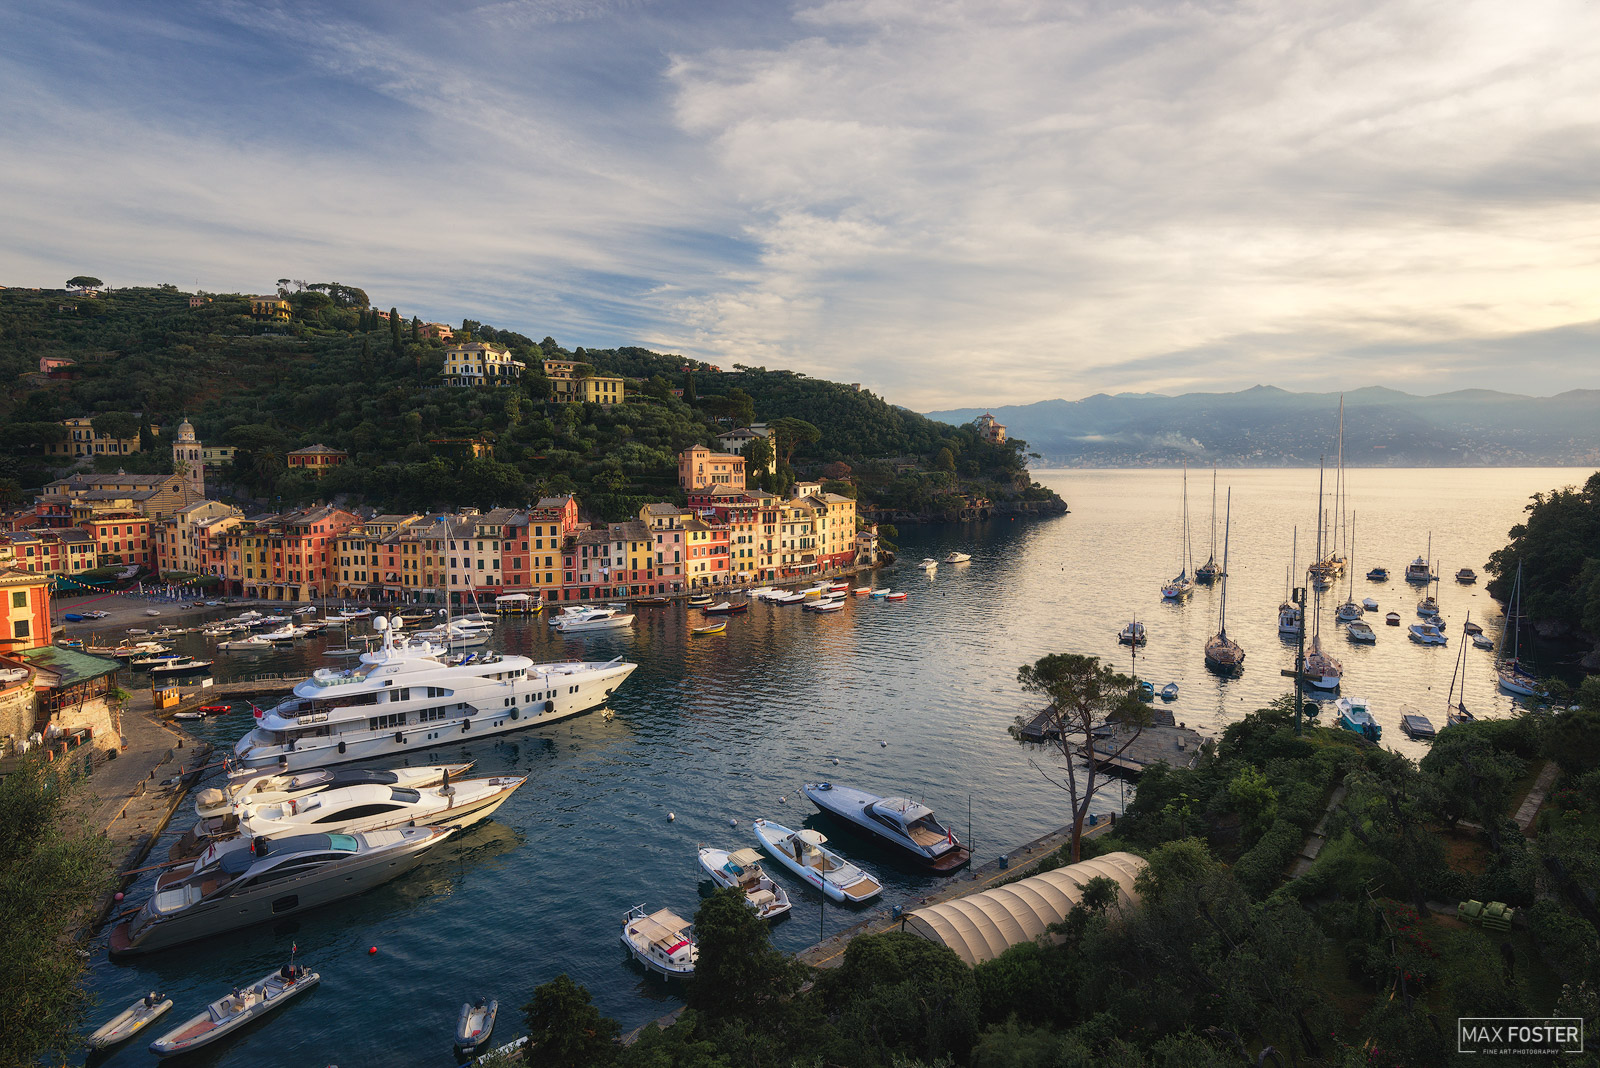 Italy, Fishing Village, Holiday Resort, Italian Riviera, harbor, picturesque, famous, With Love From Portofino, photo